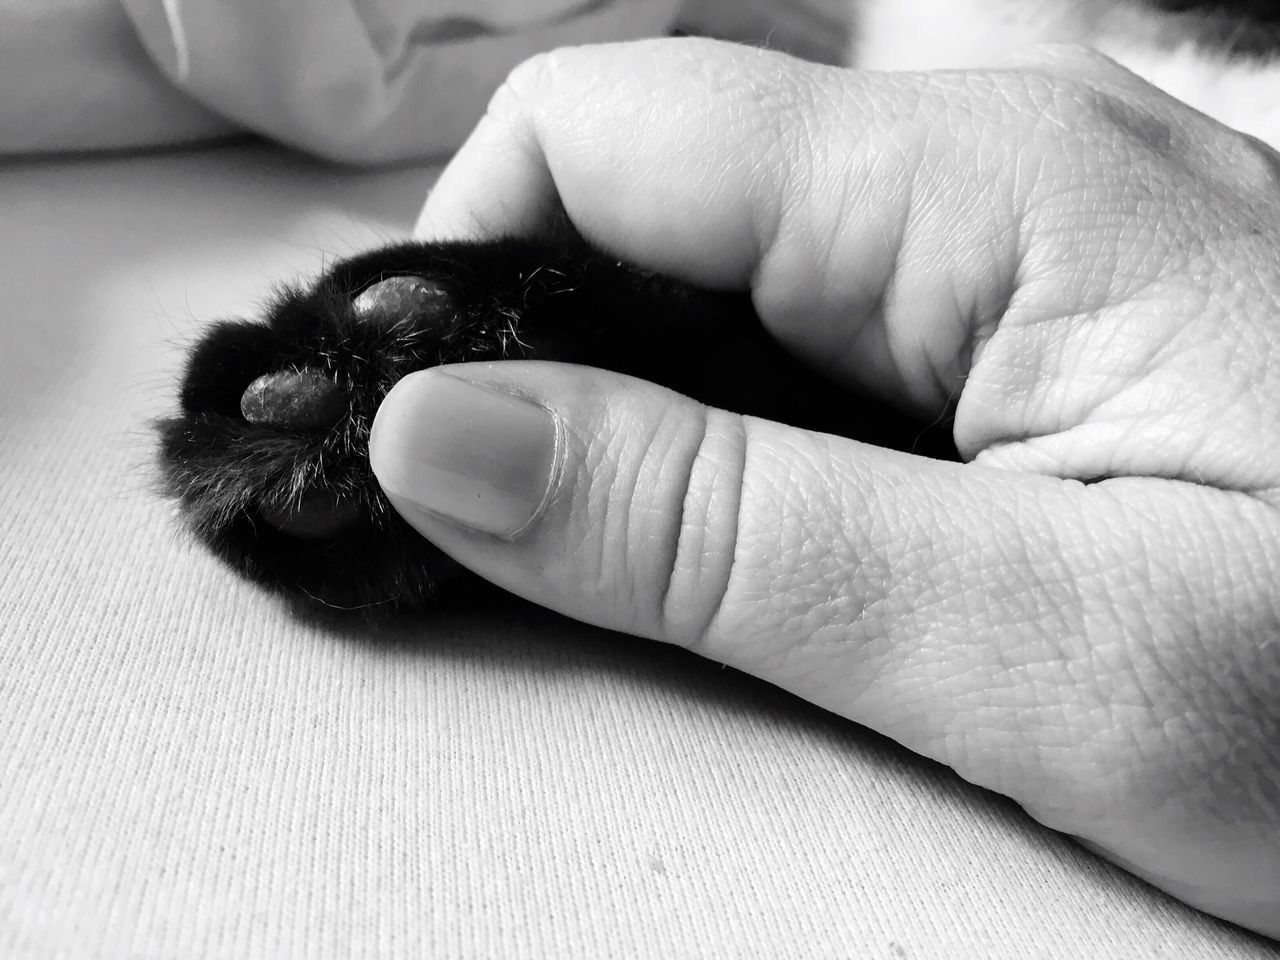 human body part, one animal, animal themes, close-up, human hand, real people, indoors, one person, mammal, day, people